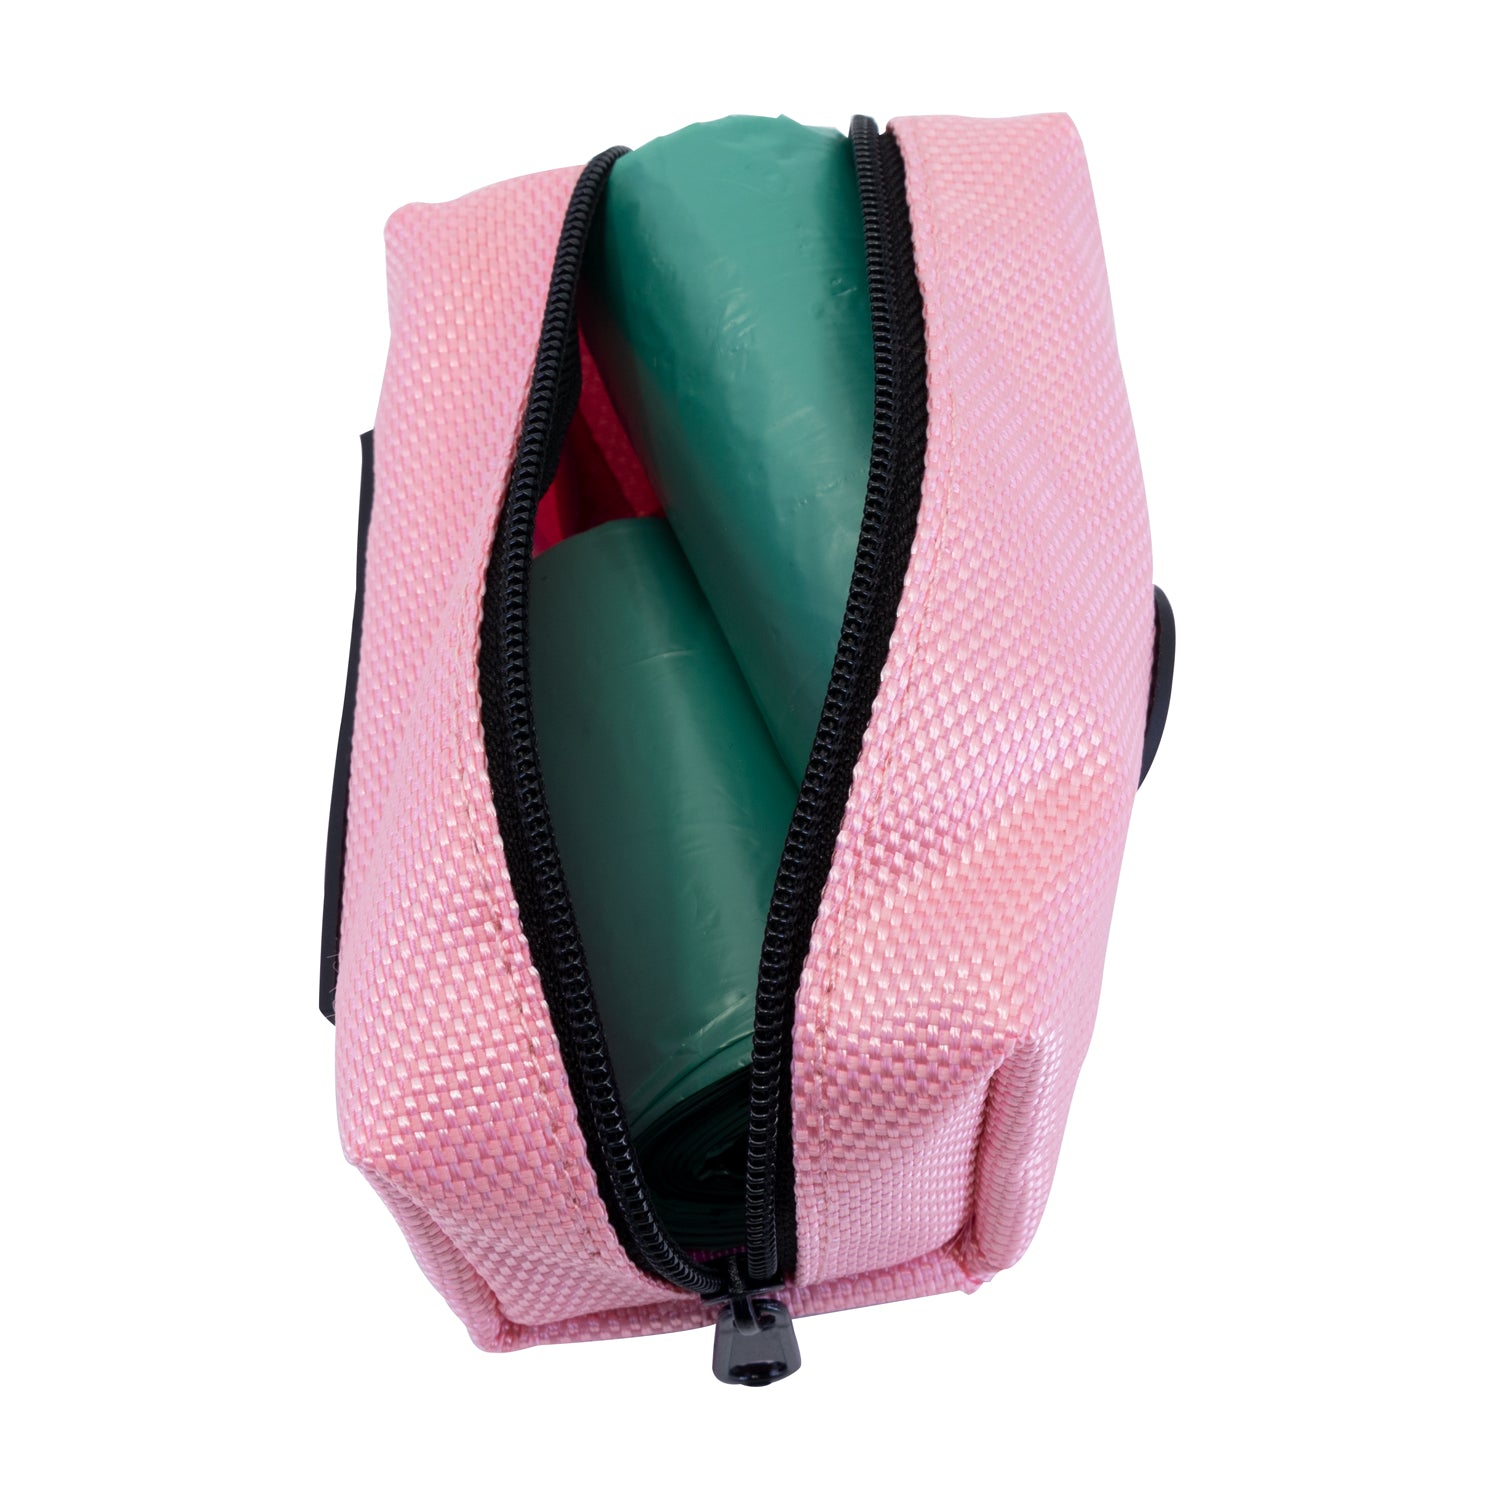 dog-bag-carrier-poop-bag-holder-pink-top-view